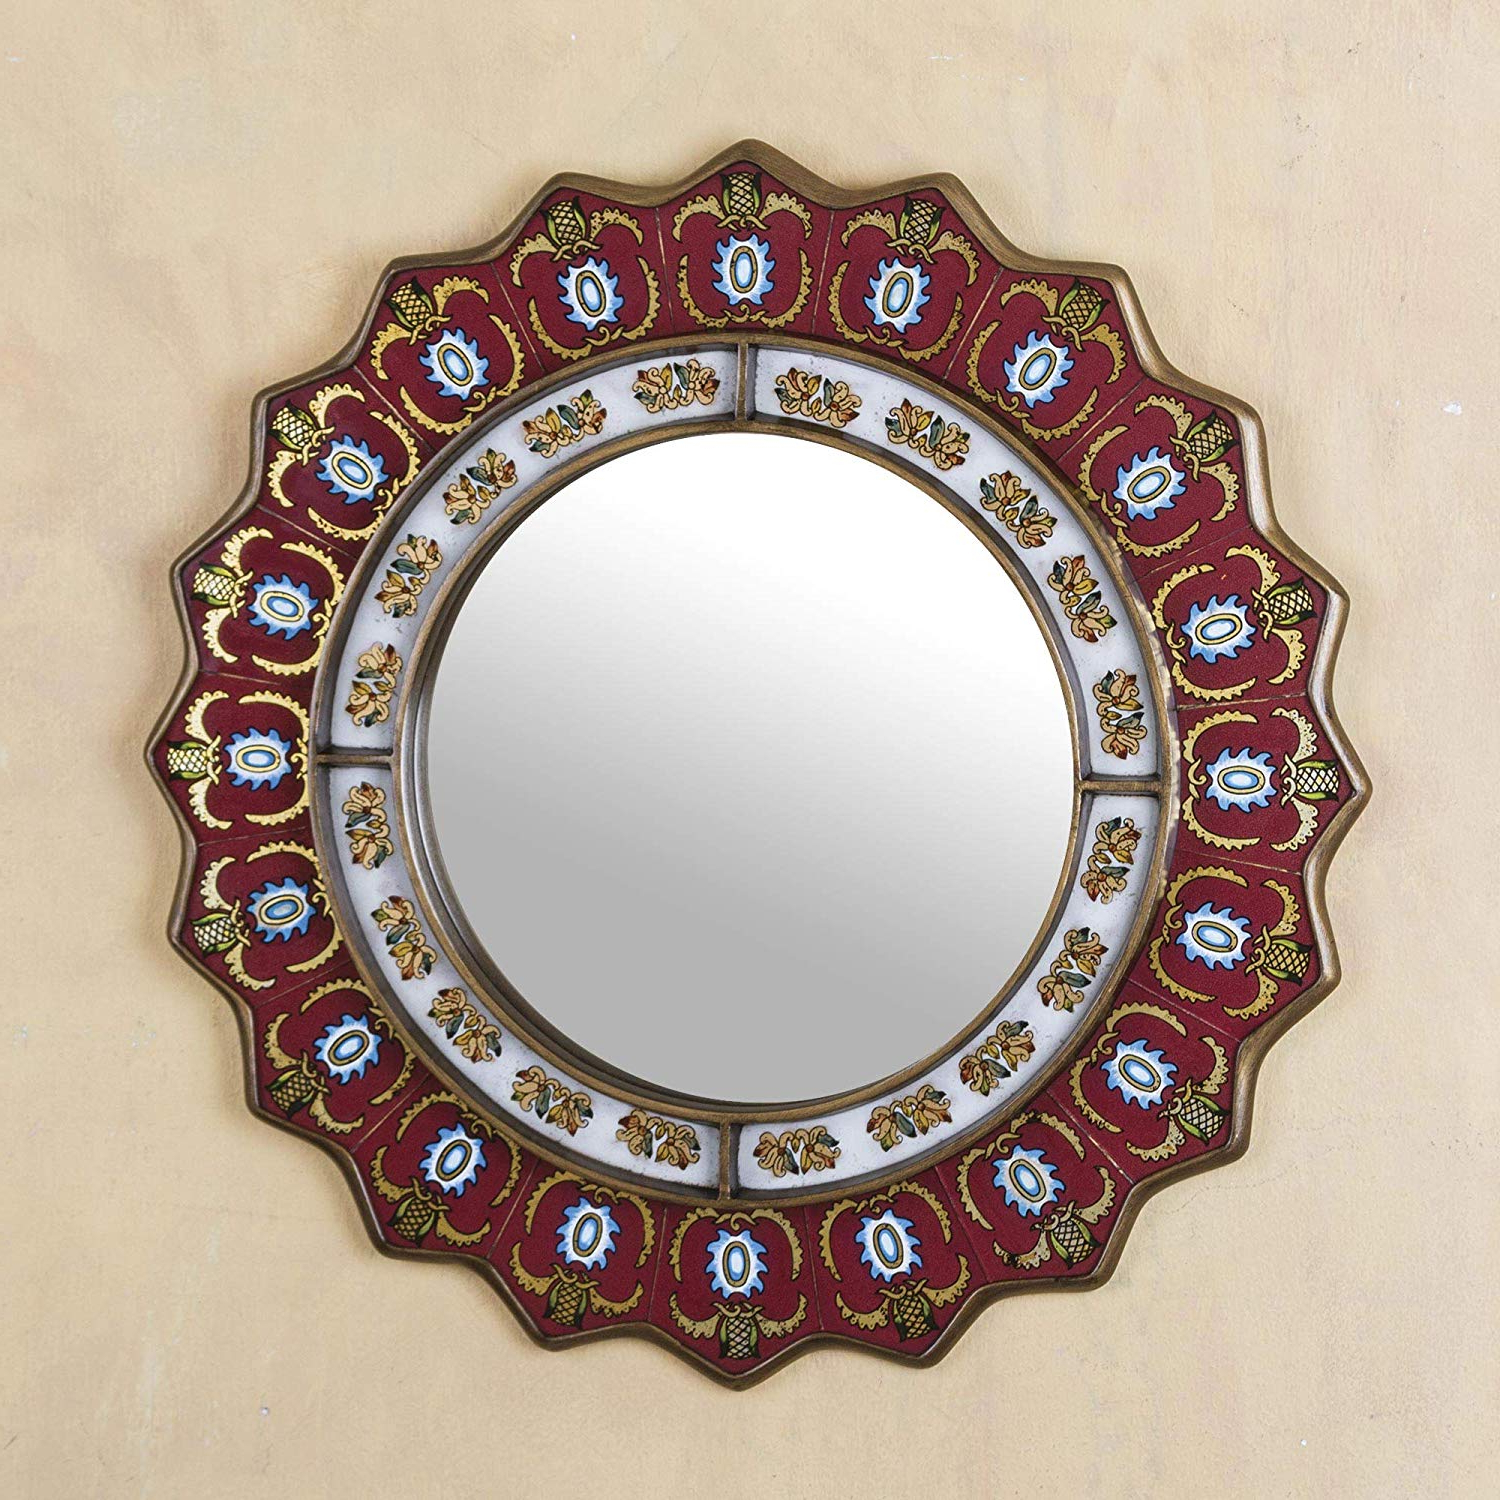 Well Known Star Wall Mirrors Regarding Novica Mi0006 Red Reverse Painted Glass Wood Framed Decorative Star Wall Mirror From Peru 'ruby Medallion' (Large) (View 18 of 20)